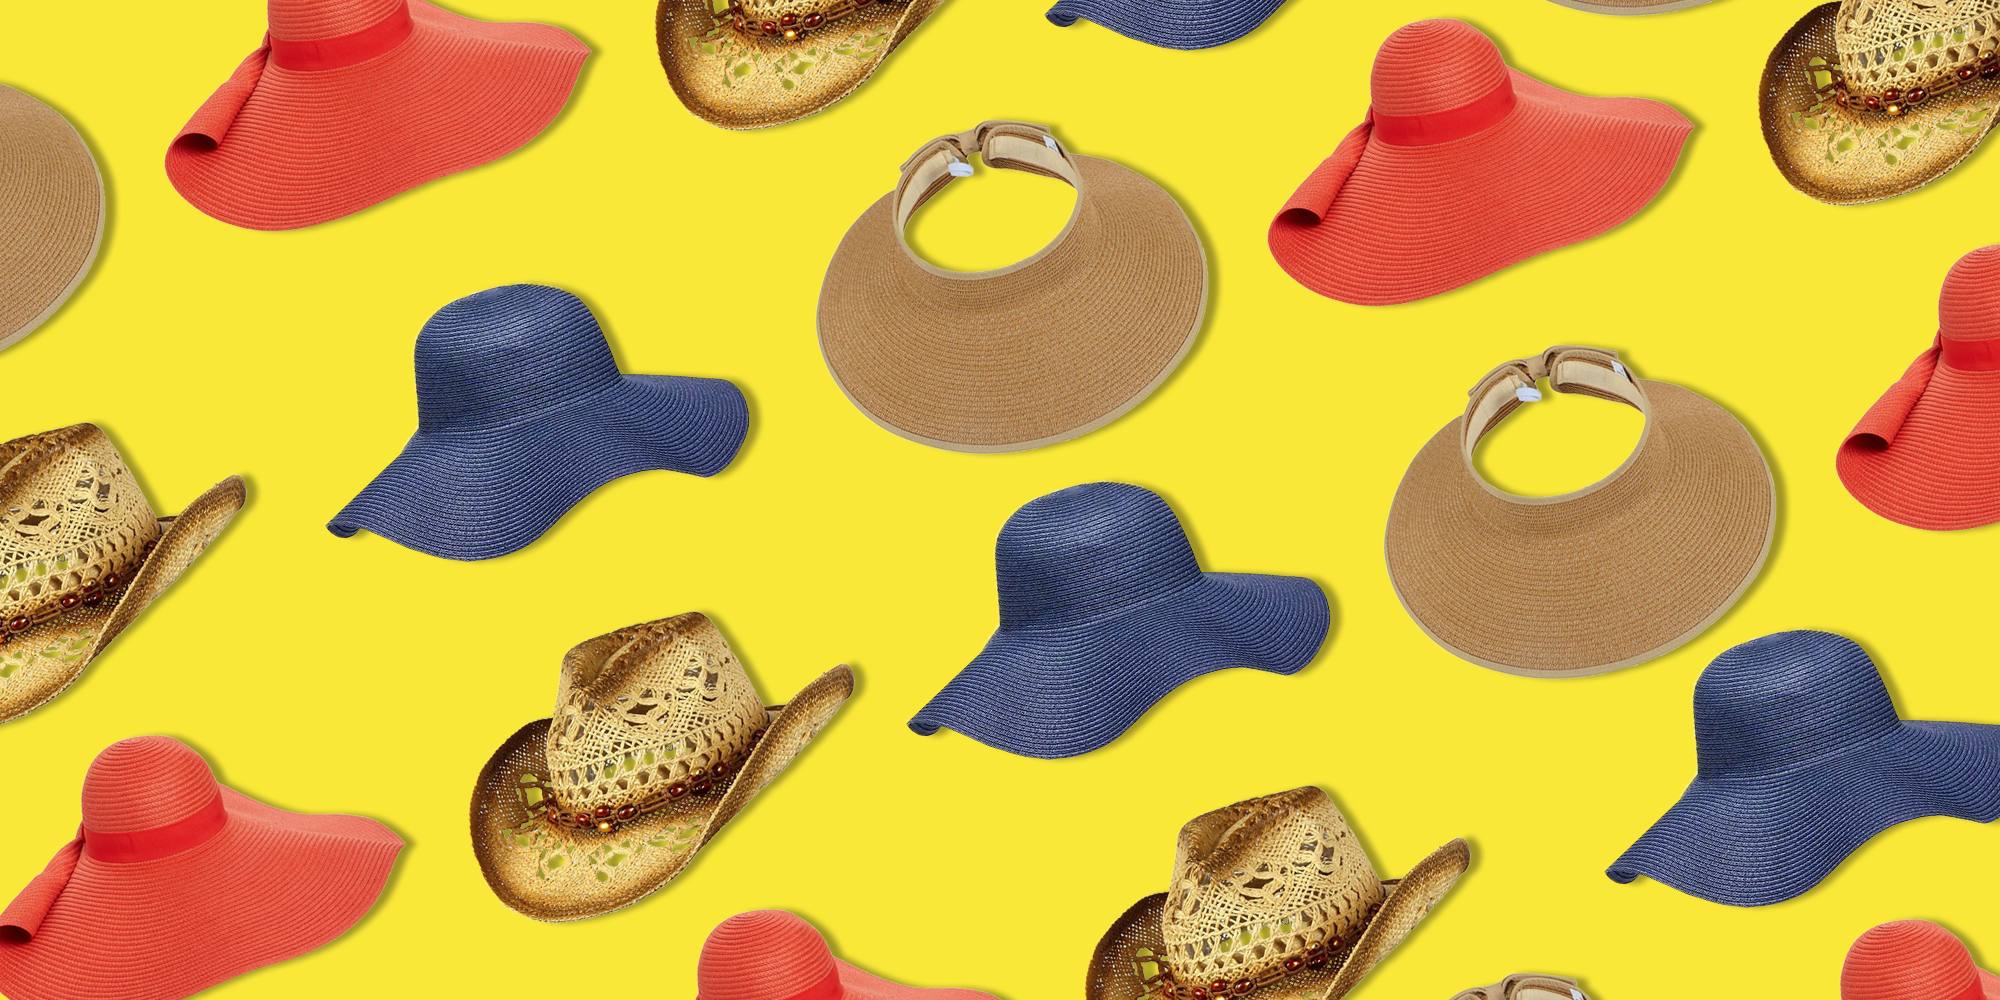 25 Best Sun Hats for Summer 2019 - Floppy, Woven Straw, More